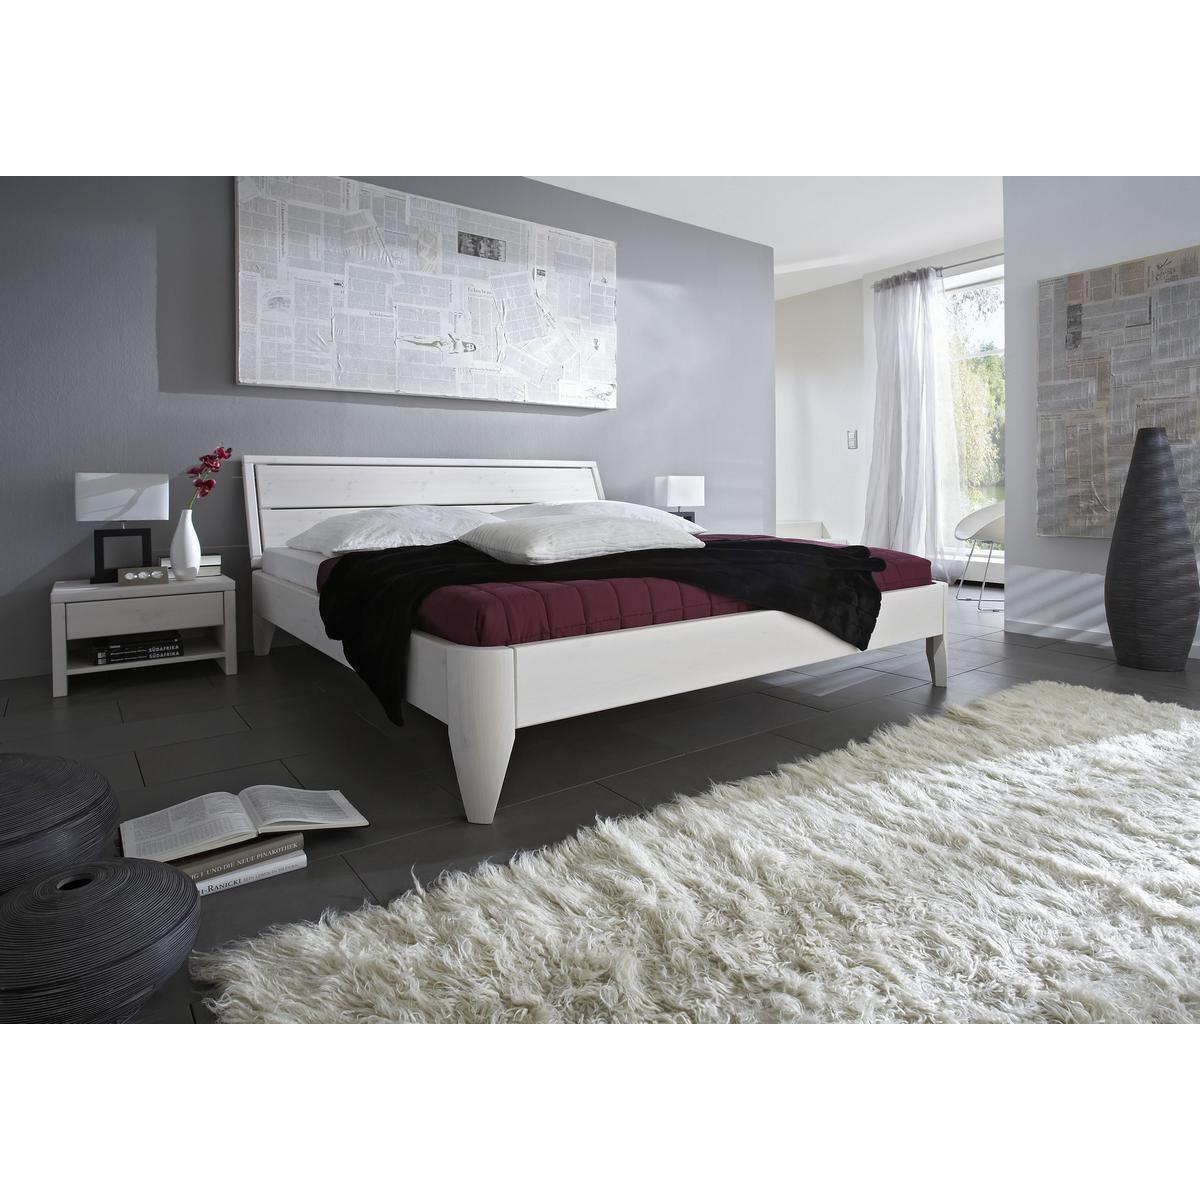 massivholz bett 140x200 easy sleep kiefer massiv wei. Black Bedroom Furniture Sets. Home Design Ideas